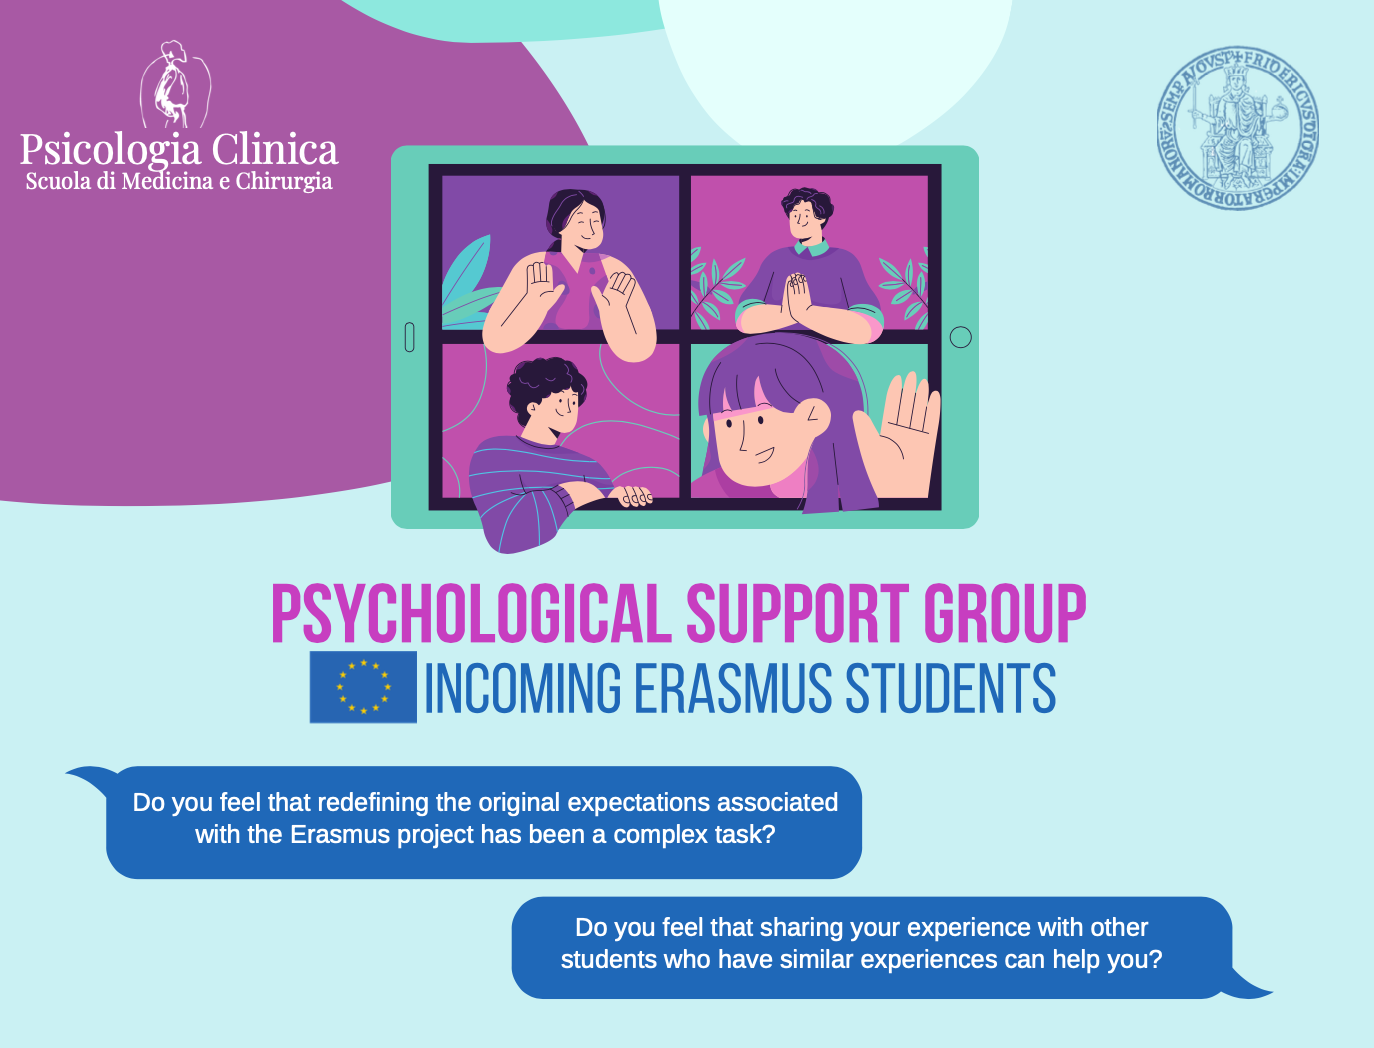 Psychological support group